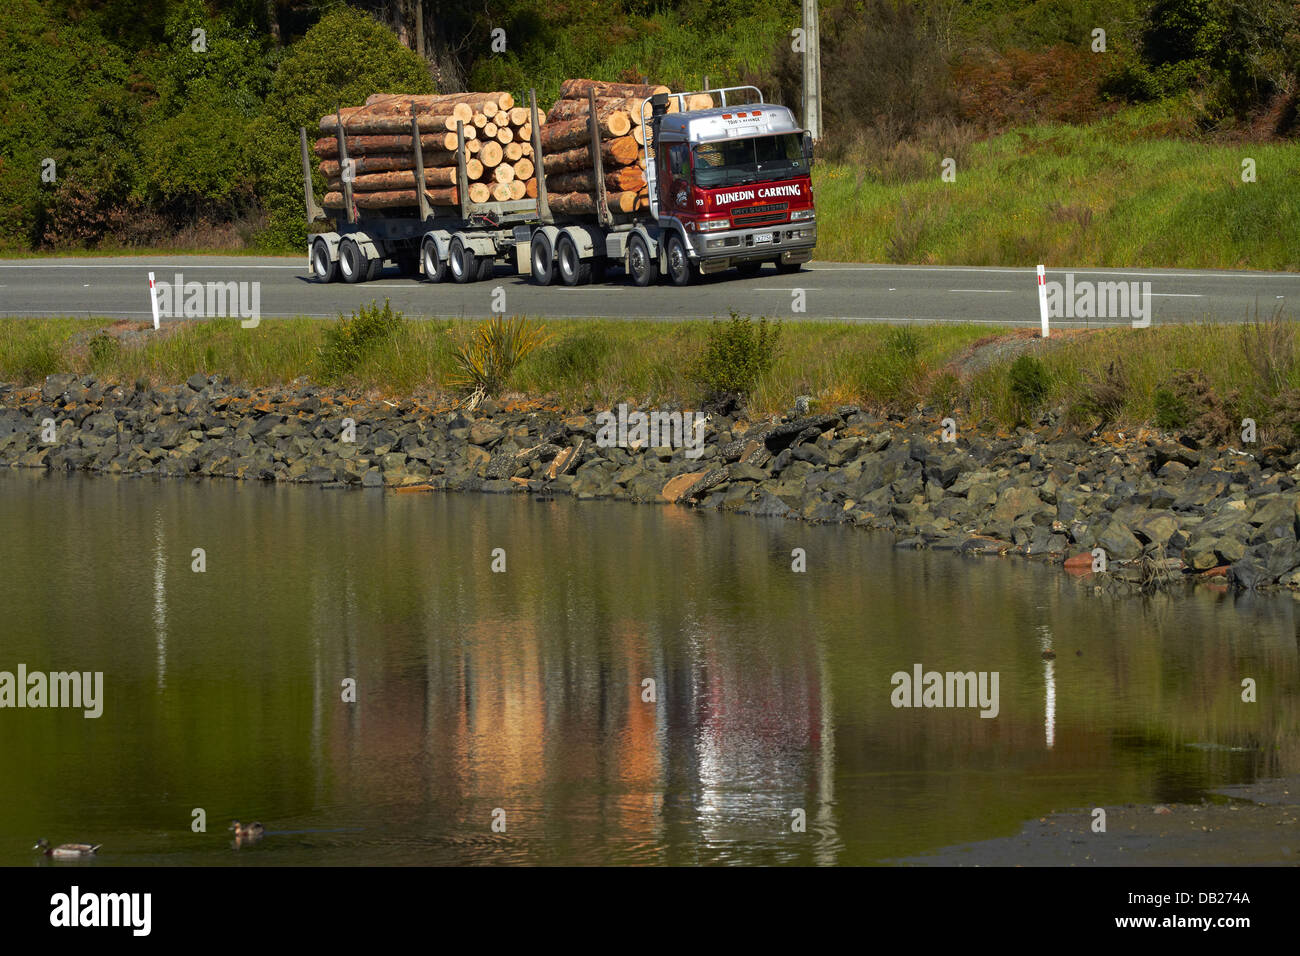 Logging truck with export logs near Port Chalmers, Dunedin, Otago, South Island, New Zealand - Stock Image